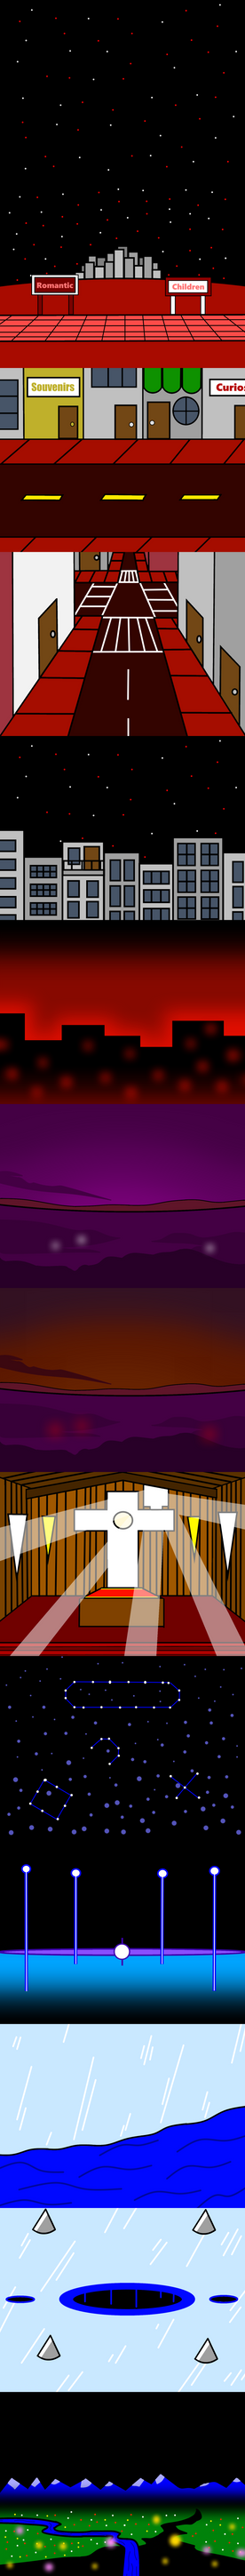 Custom Walfas Backgrounds - Welcome to Makai by CameronWallace